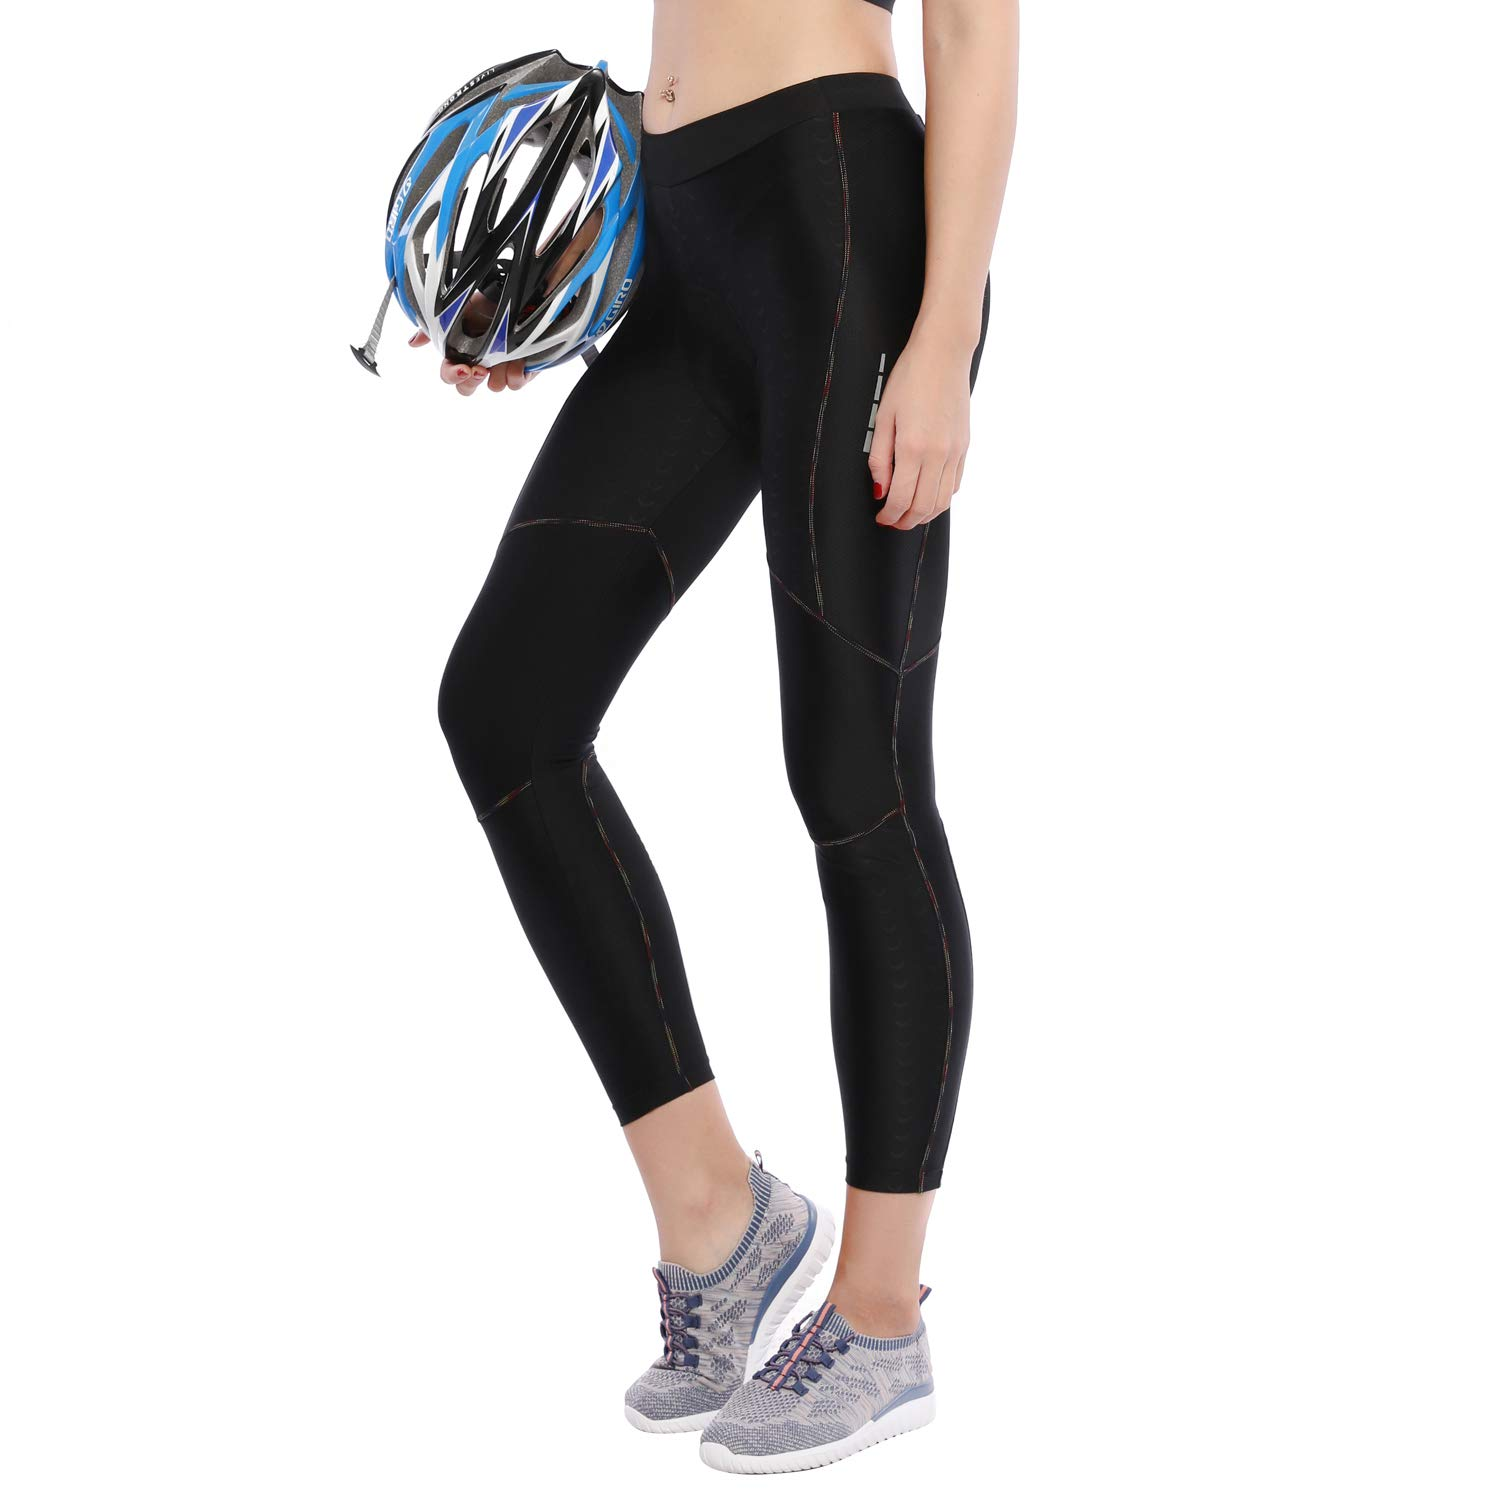 Santic Women's Cycling Pants Bike 4D Padded Tights Long Bicycle Pants Breathable & Quick Dry